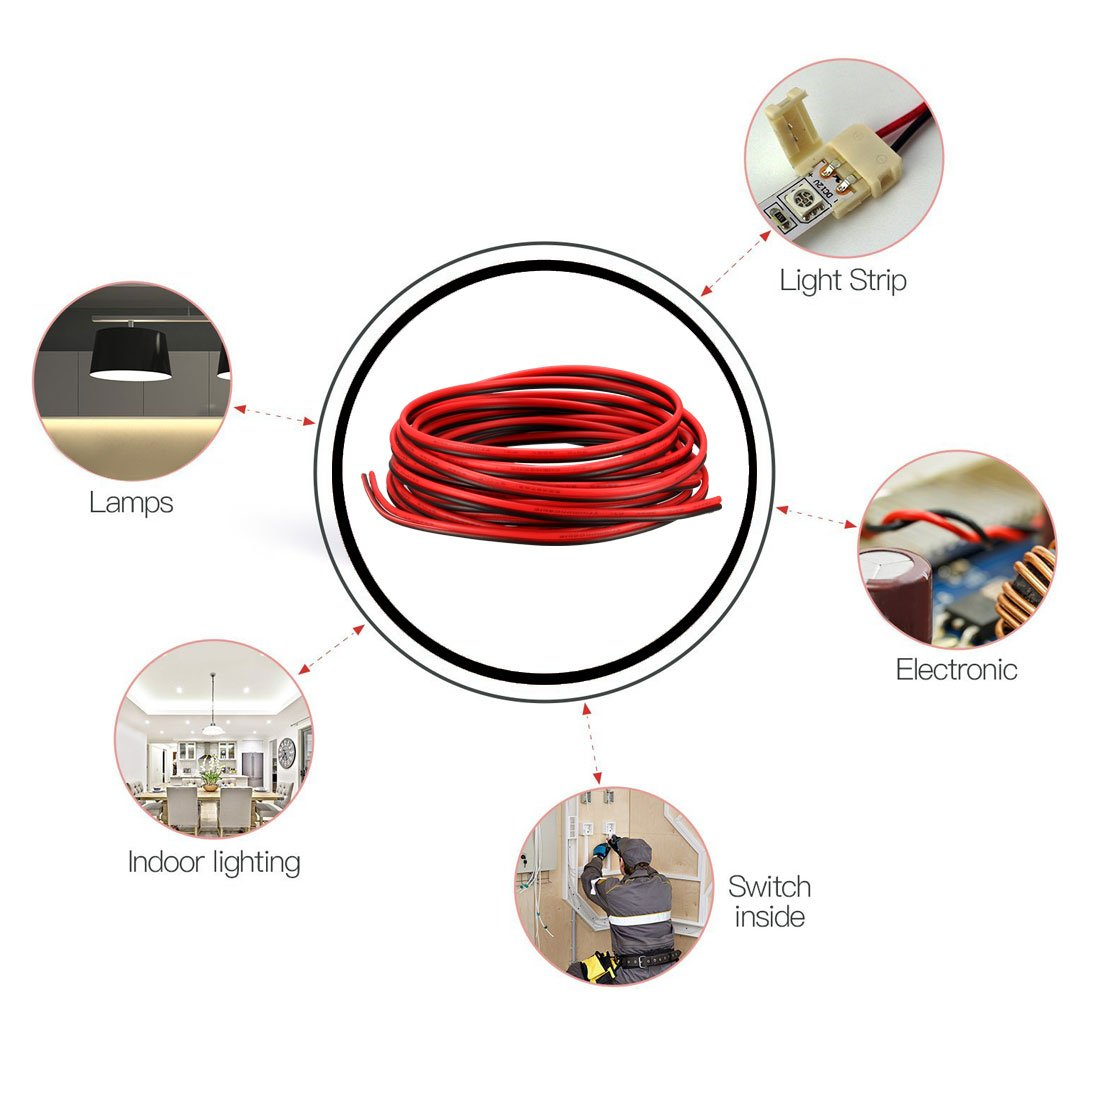 Uxcell Red Black Wire 2pin Extension Cable Cord 22 Awg Parallel Bulb Wiring Diagram Led Strip Light For Tin Plated Copper 3 Meters Length A18033100ux0015